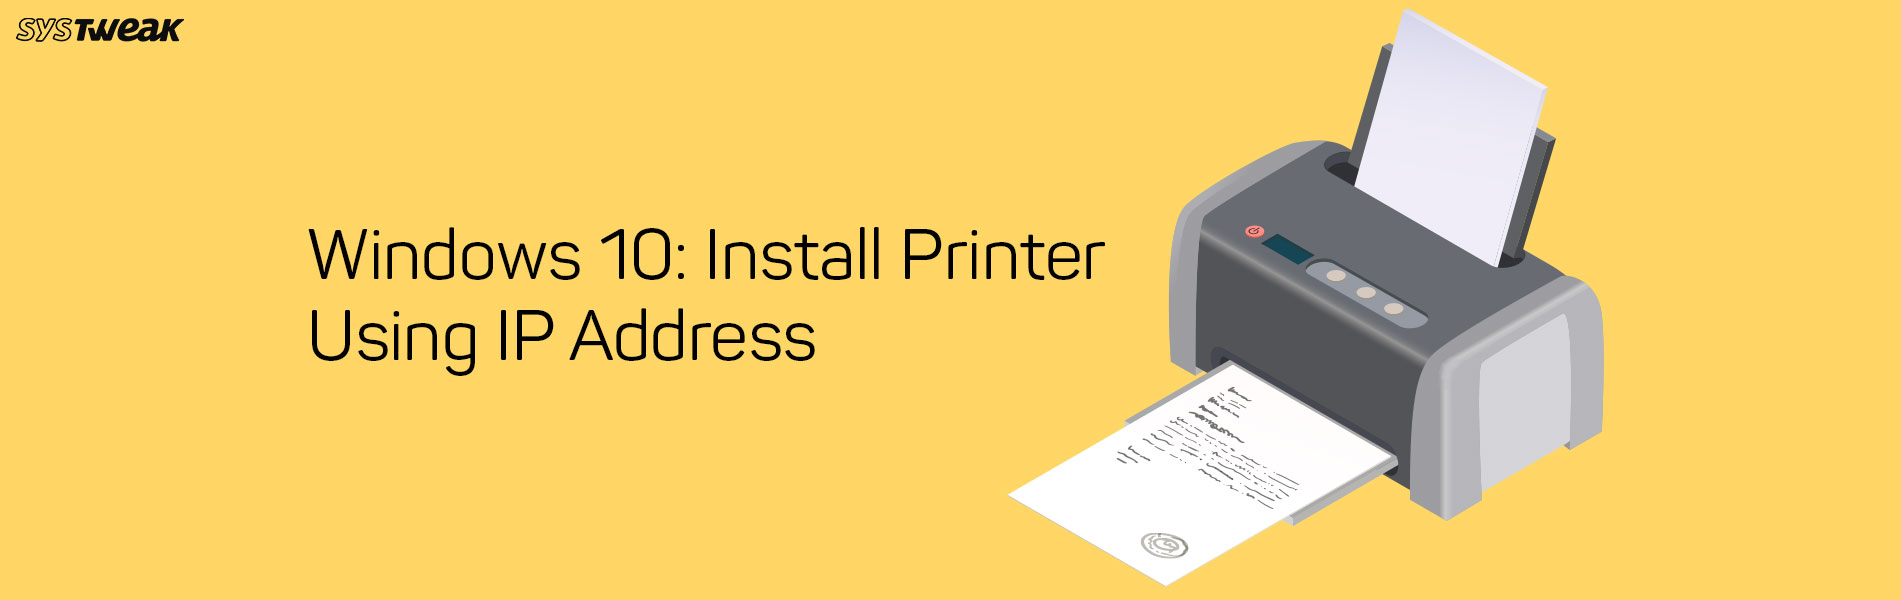 how to install printer via ip address in windows 10